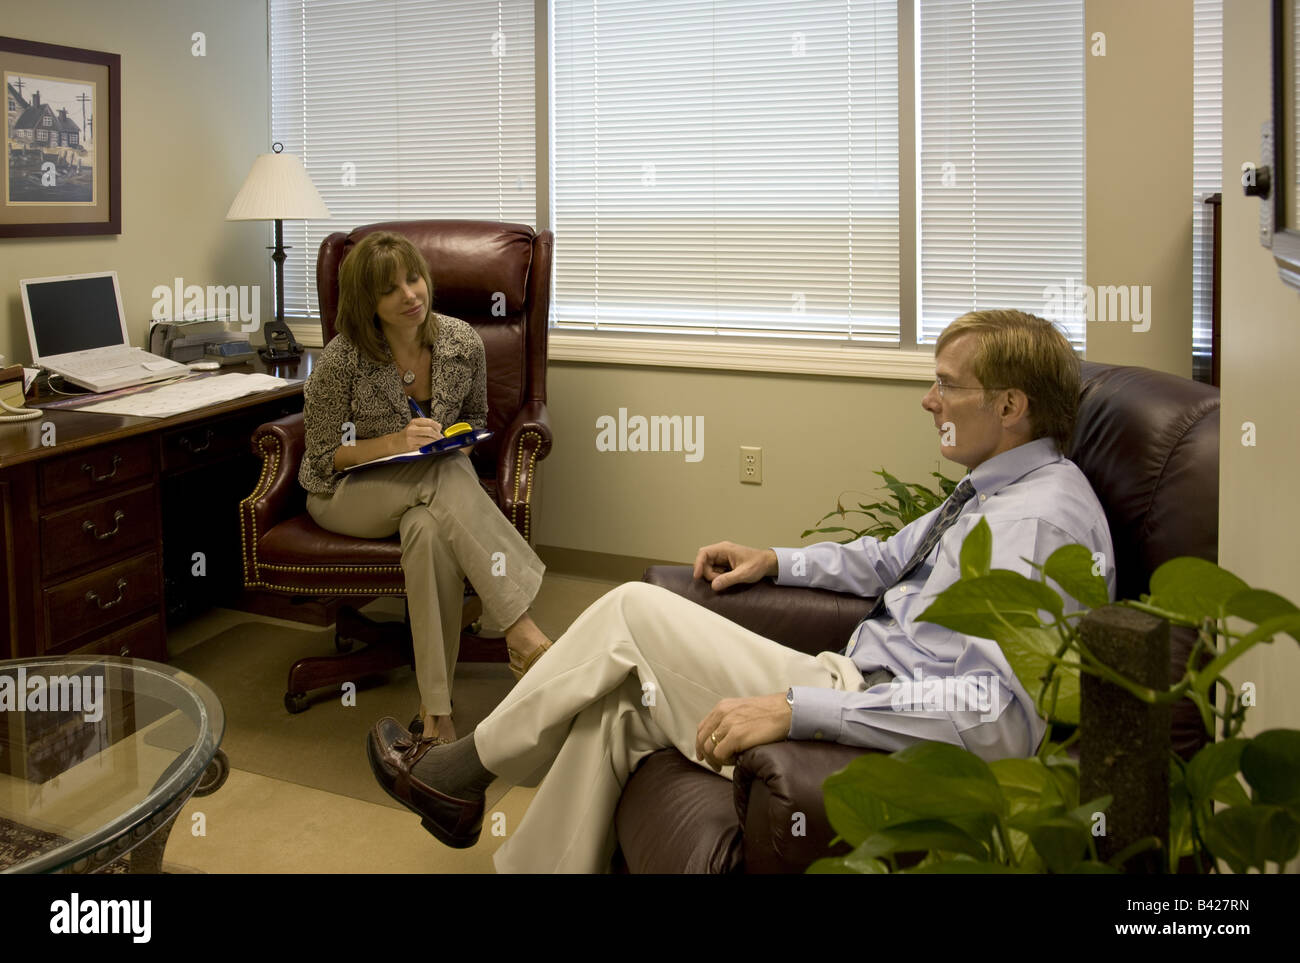 A female psychotherapist conducts a therapy session with a middle-aged man. Stock Photo